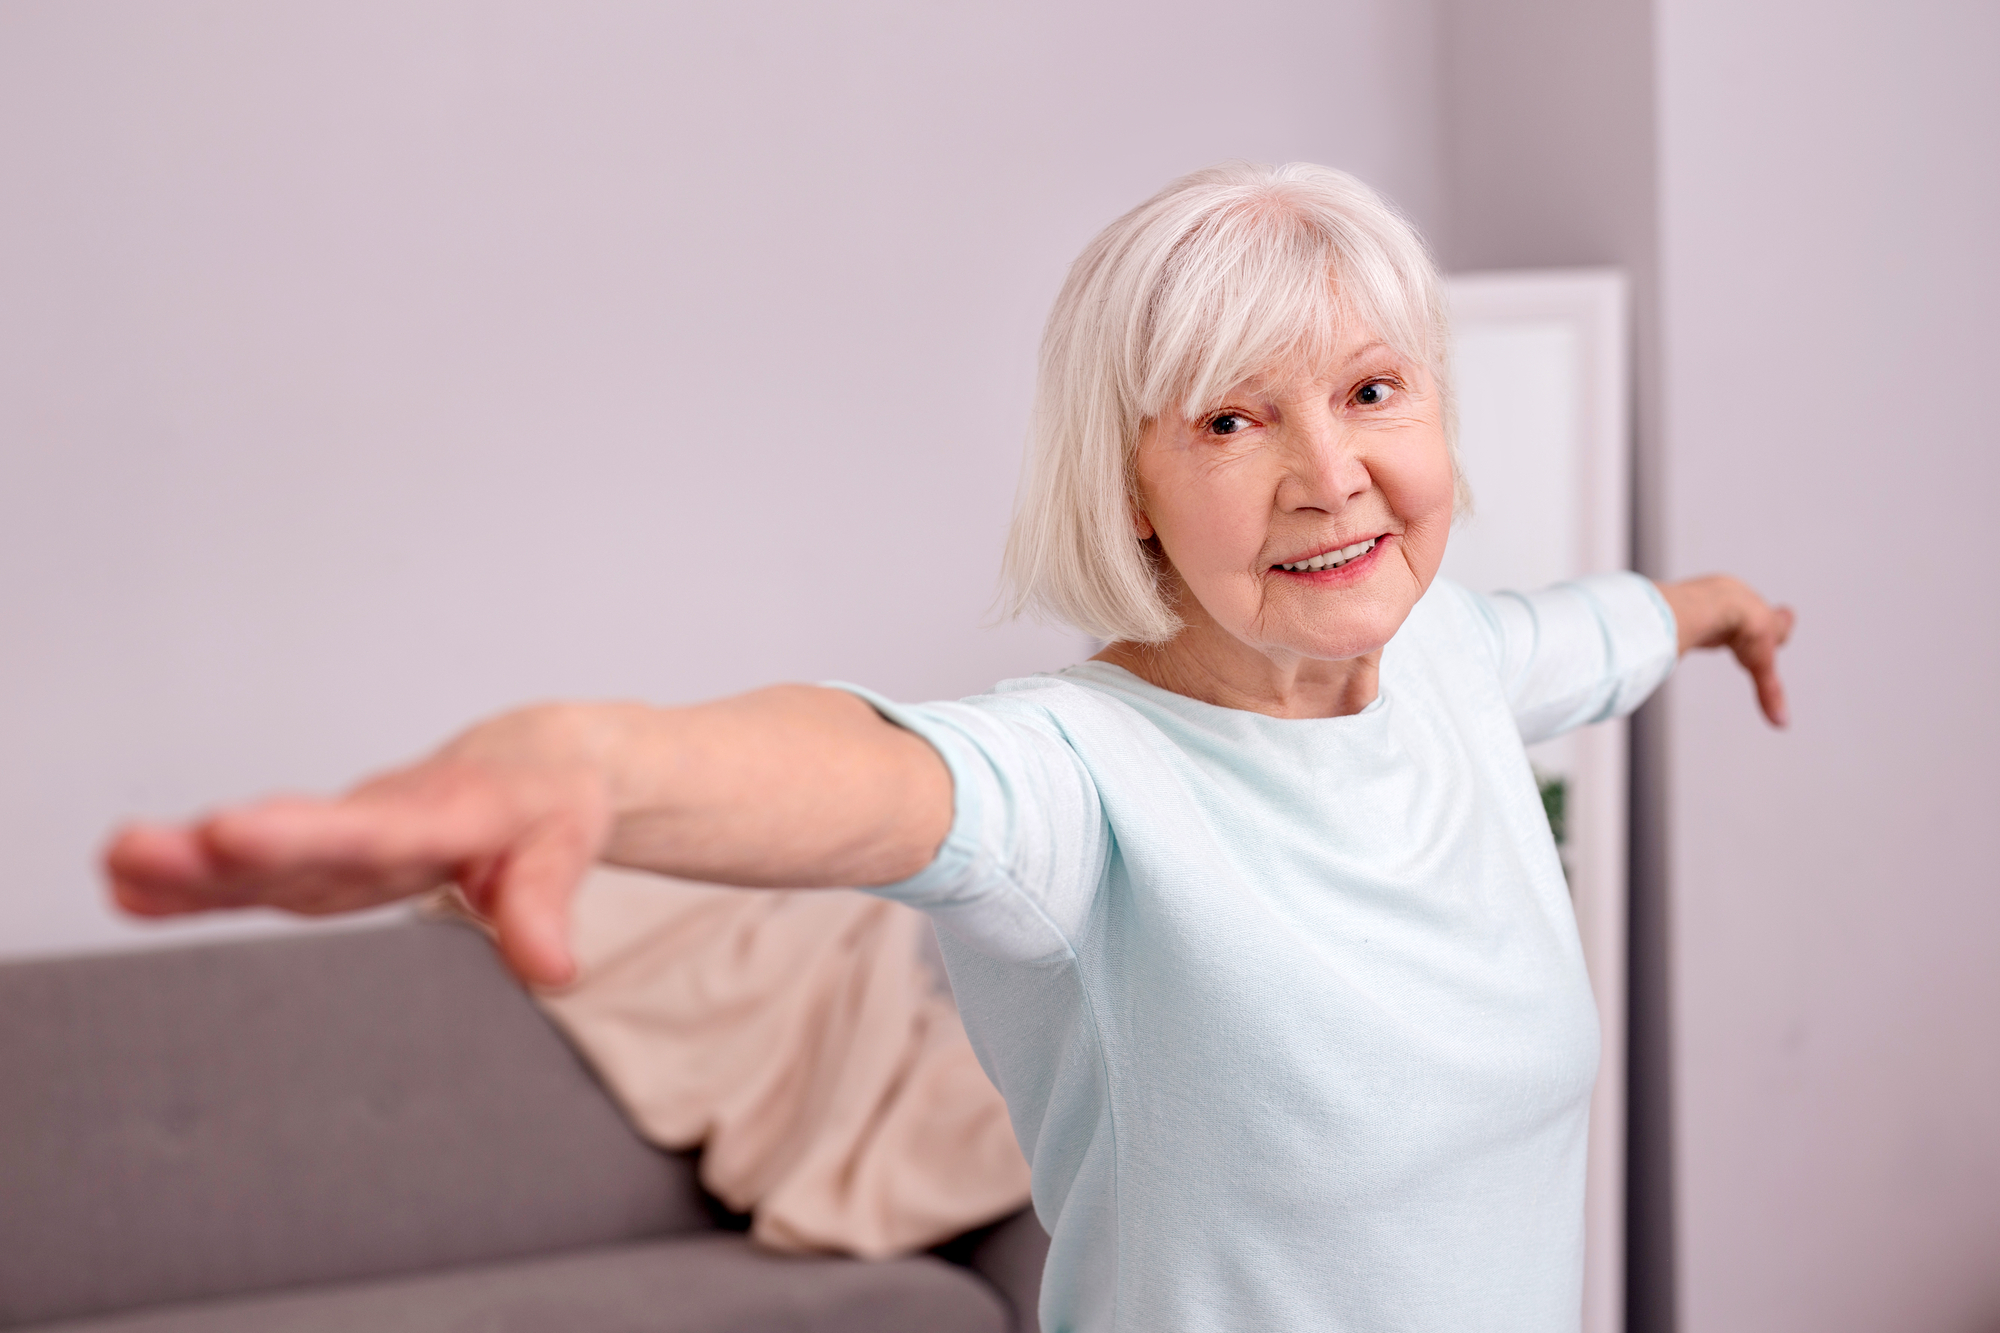 pleasant woman spreading arms wide and smiling